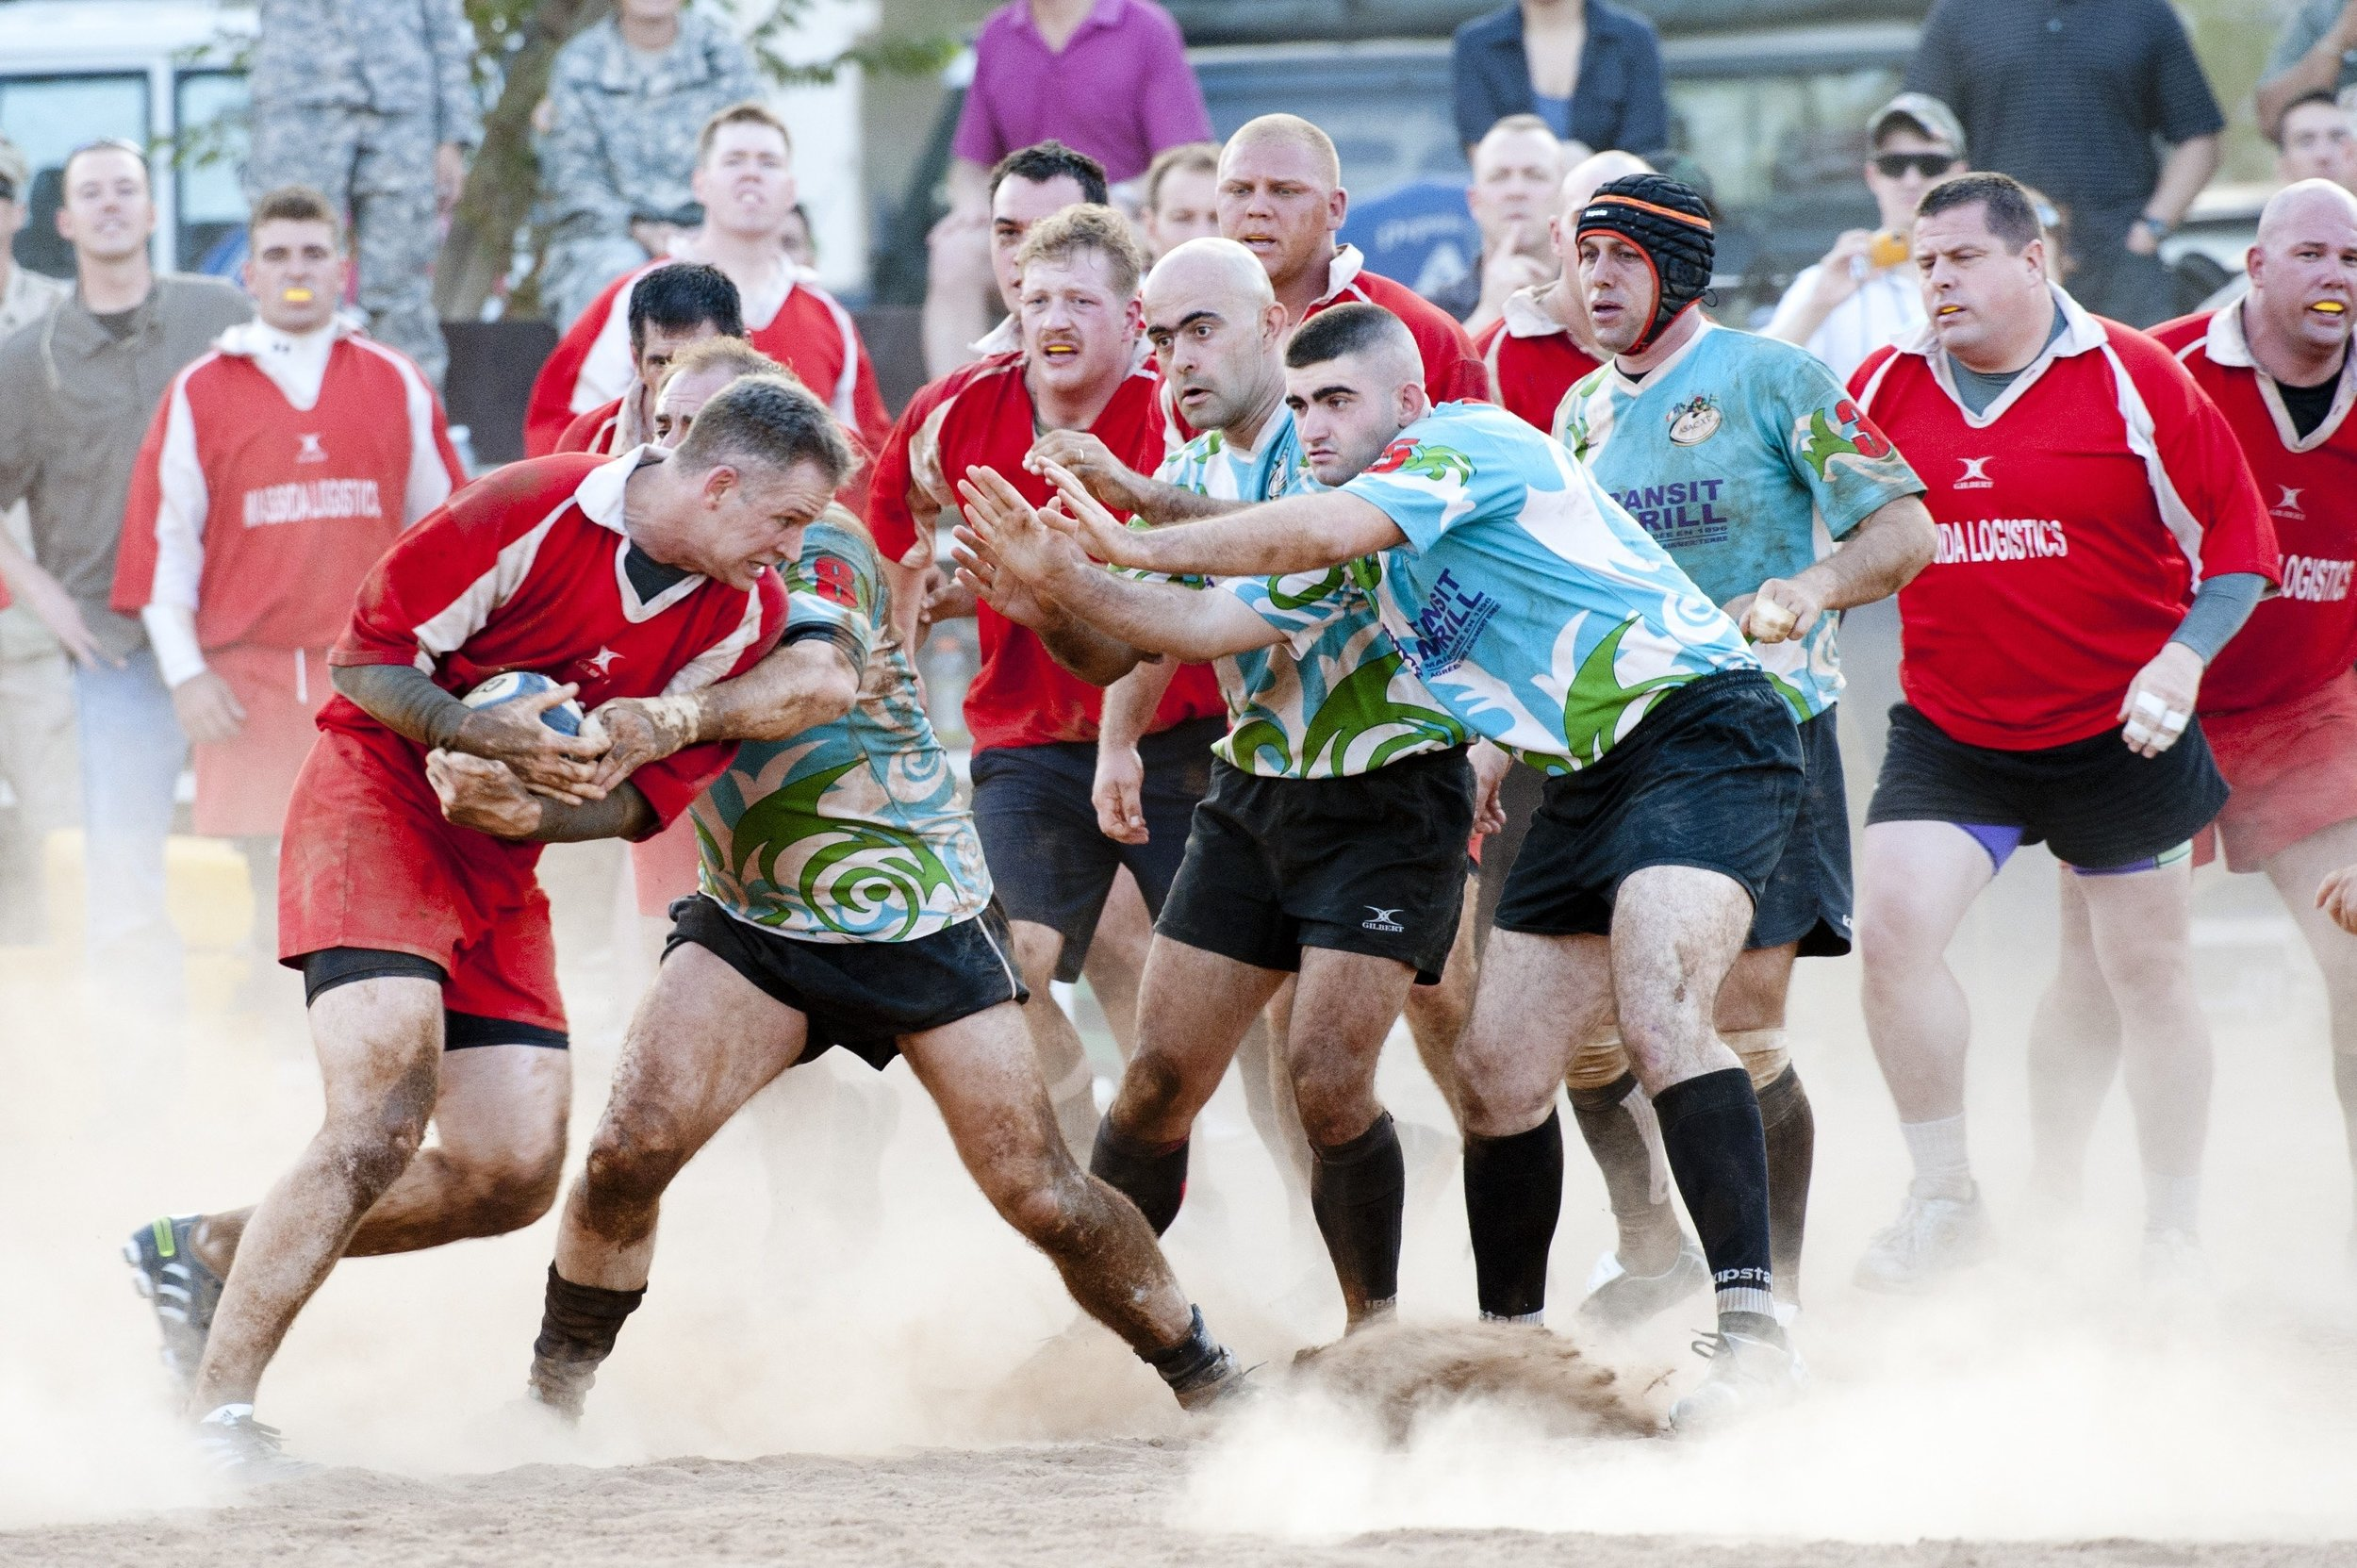 rugby-sports-players-competition-73763.jpeg